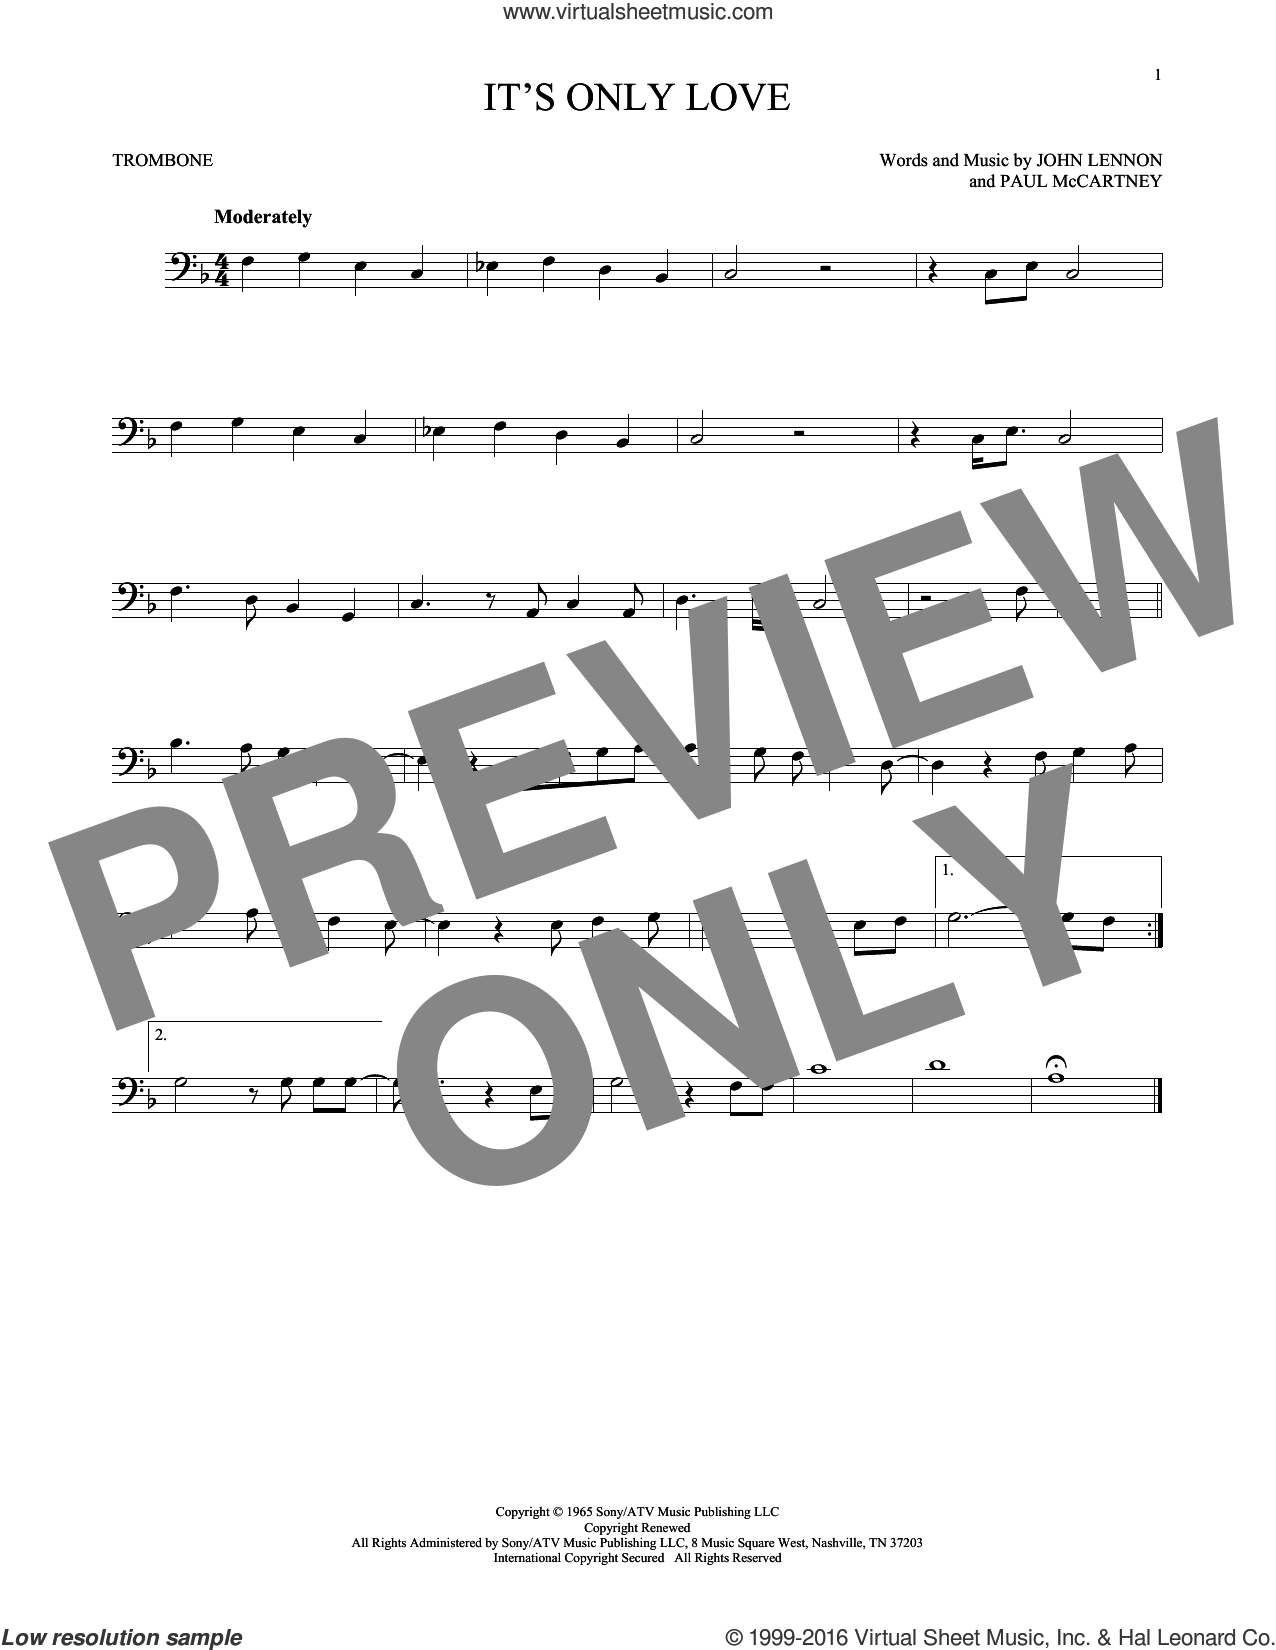 It's Only Love sheet music for trombone solo by The Beatles, John Lennon and Paul McCartney. Score Image Preview.